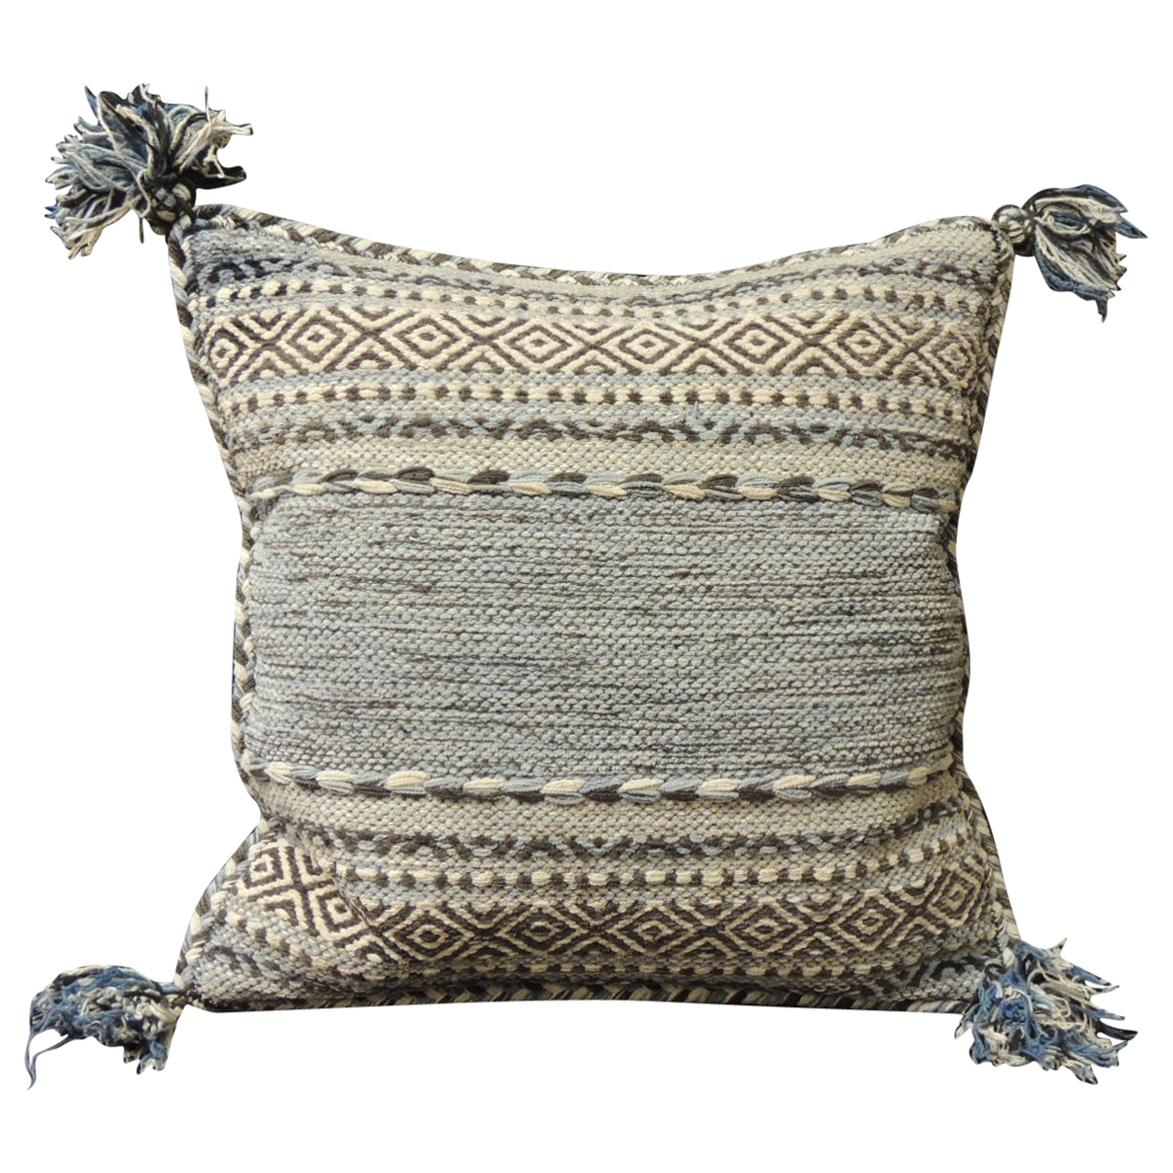 Woven Blue and Dark Grey Decorative Pillow with Tassels